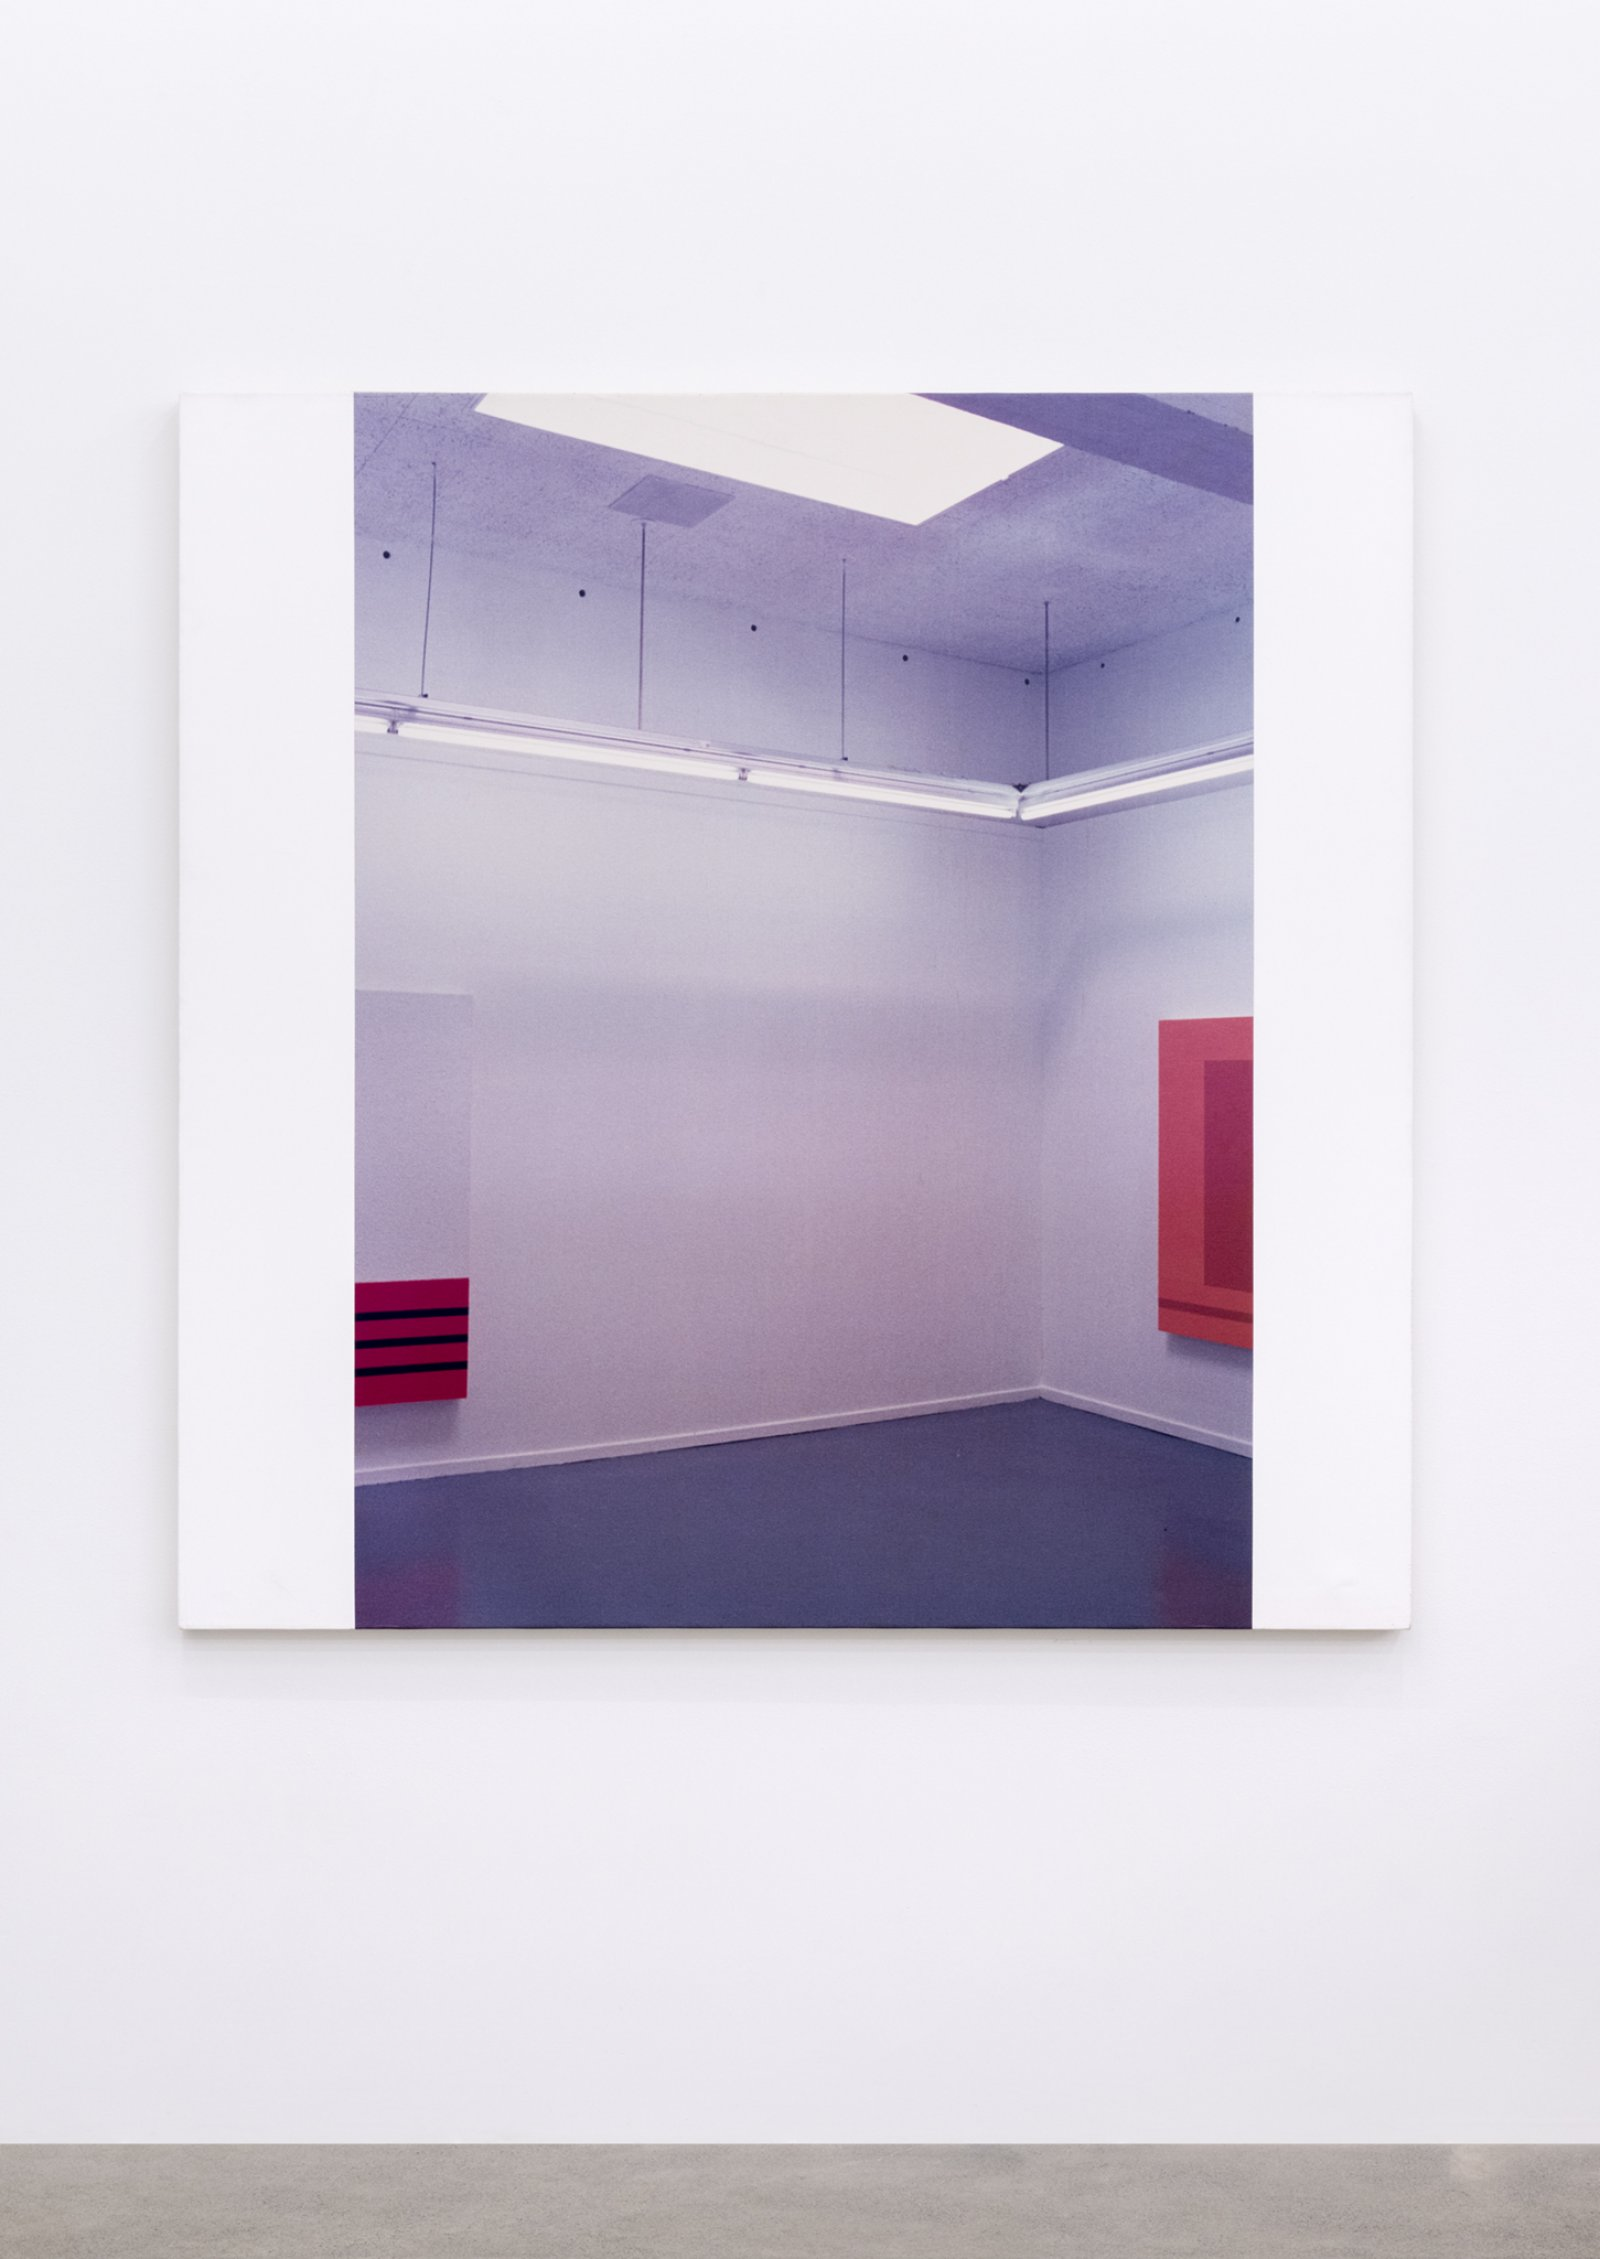 Ian Wallace, In The Museum (Peter Halley Series II), 1989, photolaminate and acrylic on canvas, 60 x 60 in. (153 x 153 cm) by Ian Wallace